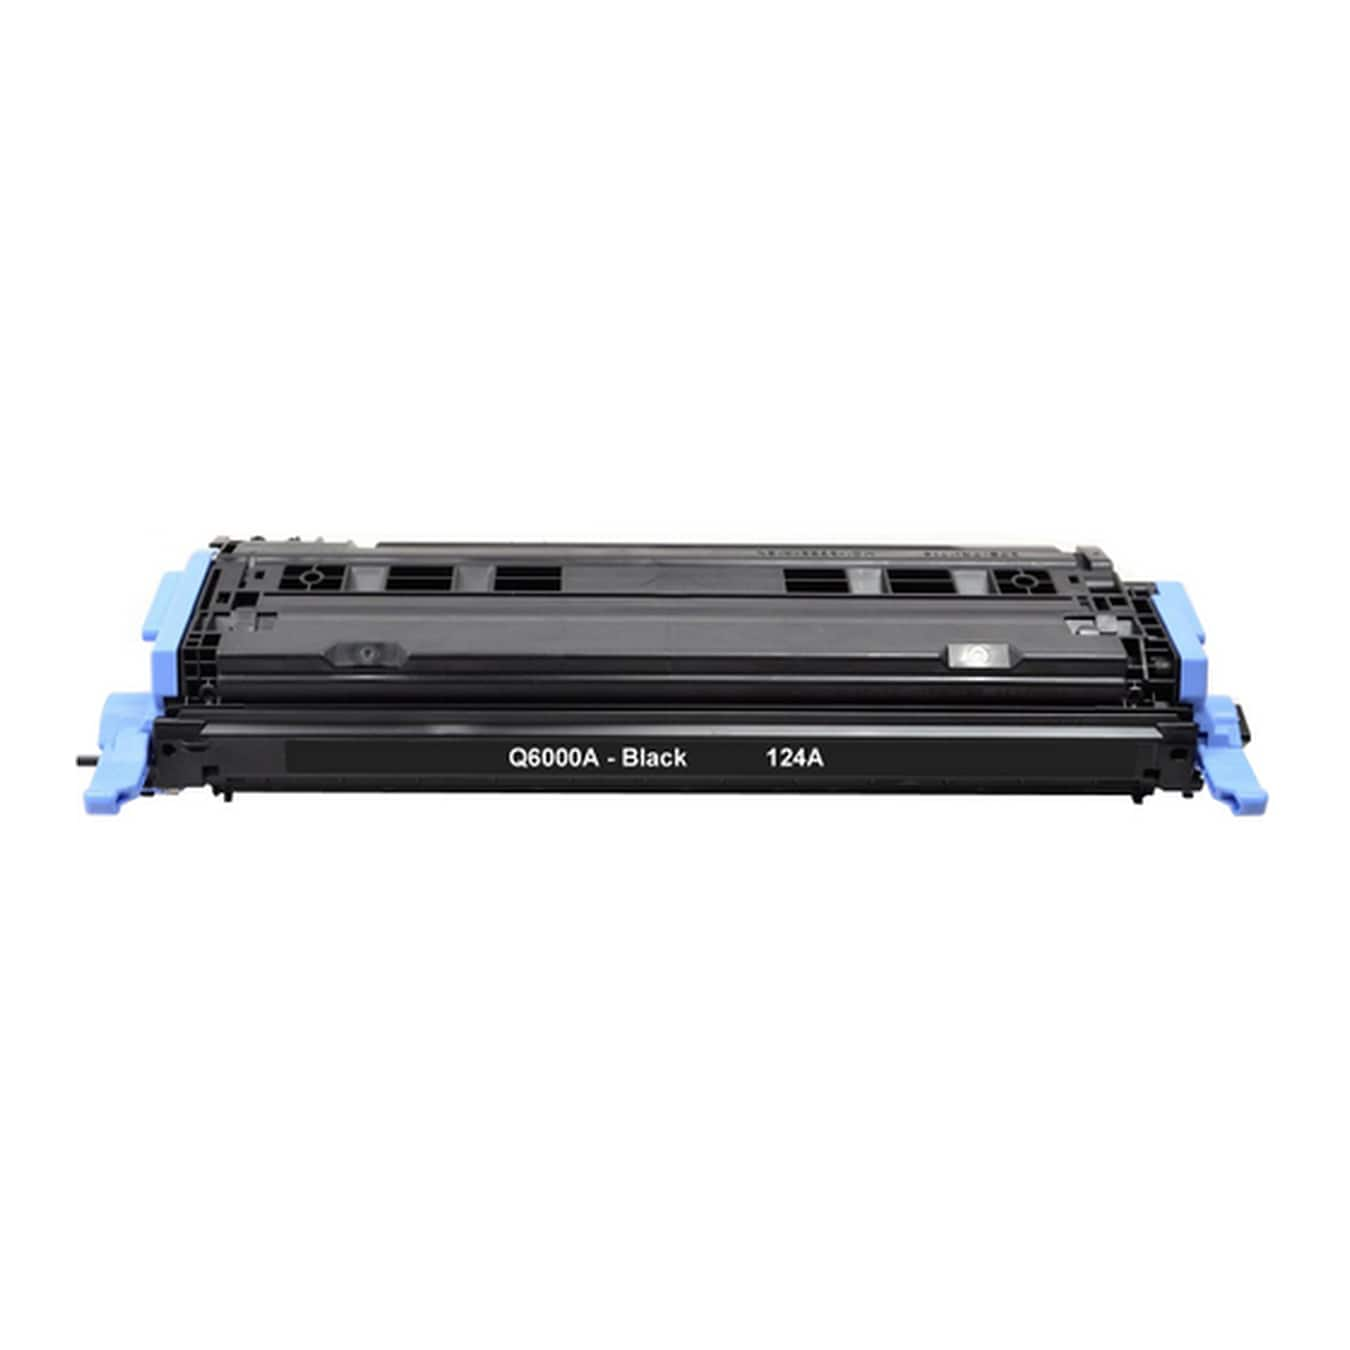 Q6000A Toner Cartridge - HP Remanufactured  (Black)